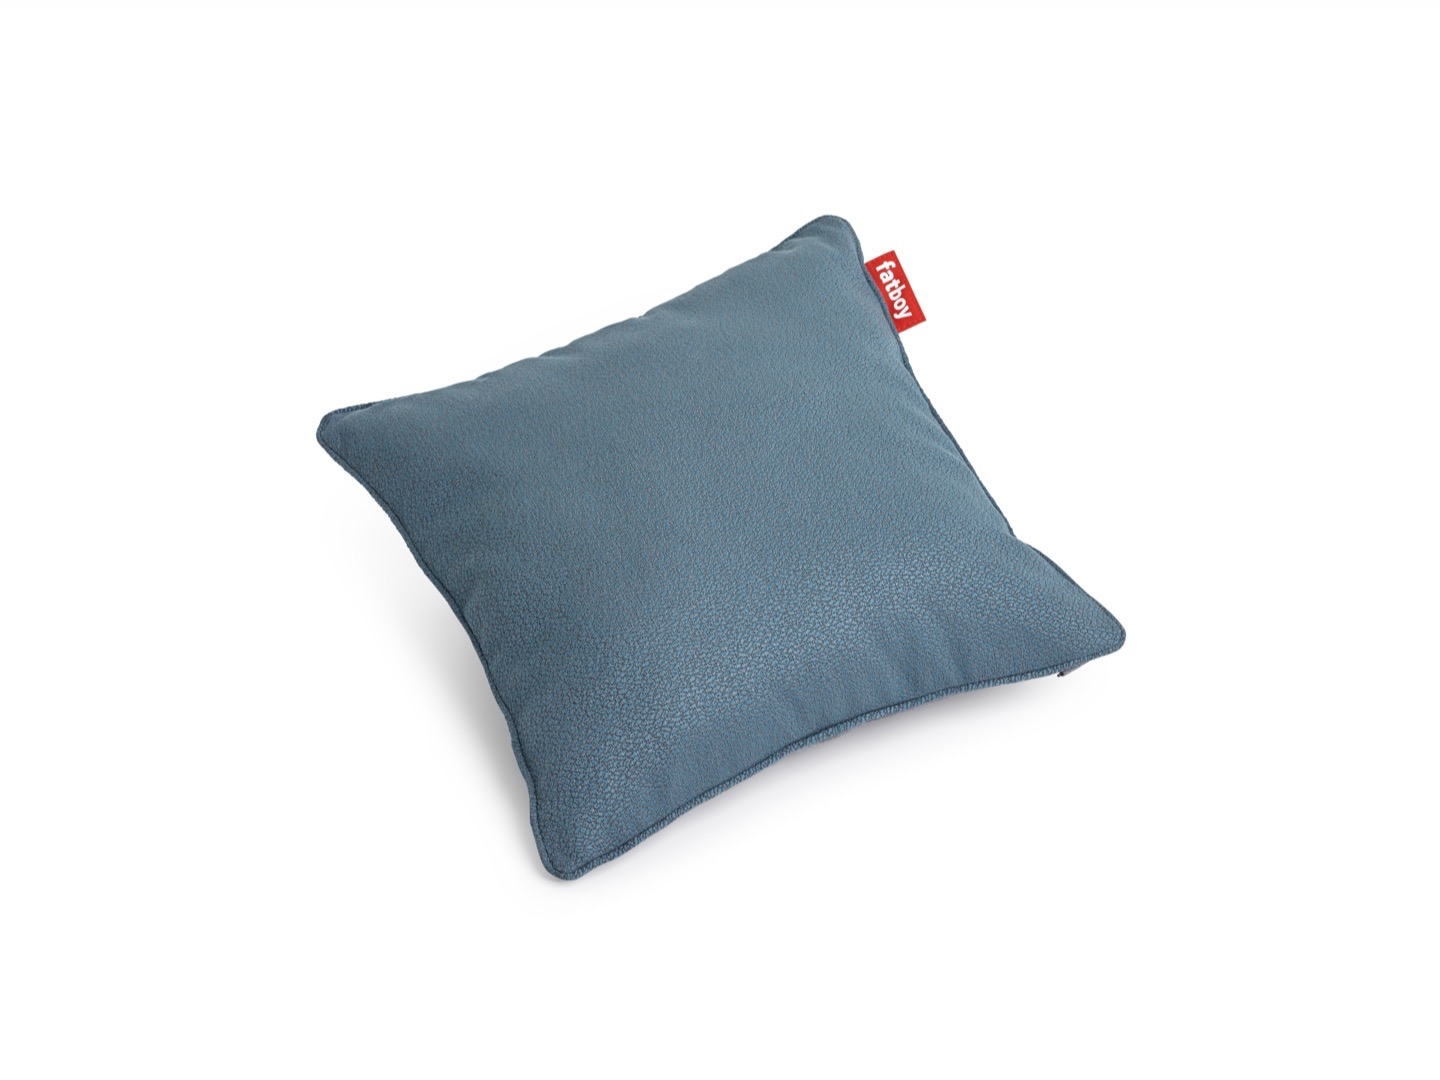 Square Pillow Duotone - poducha